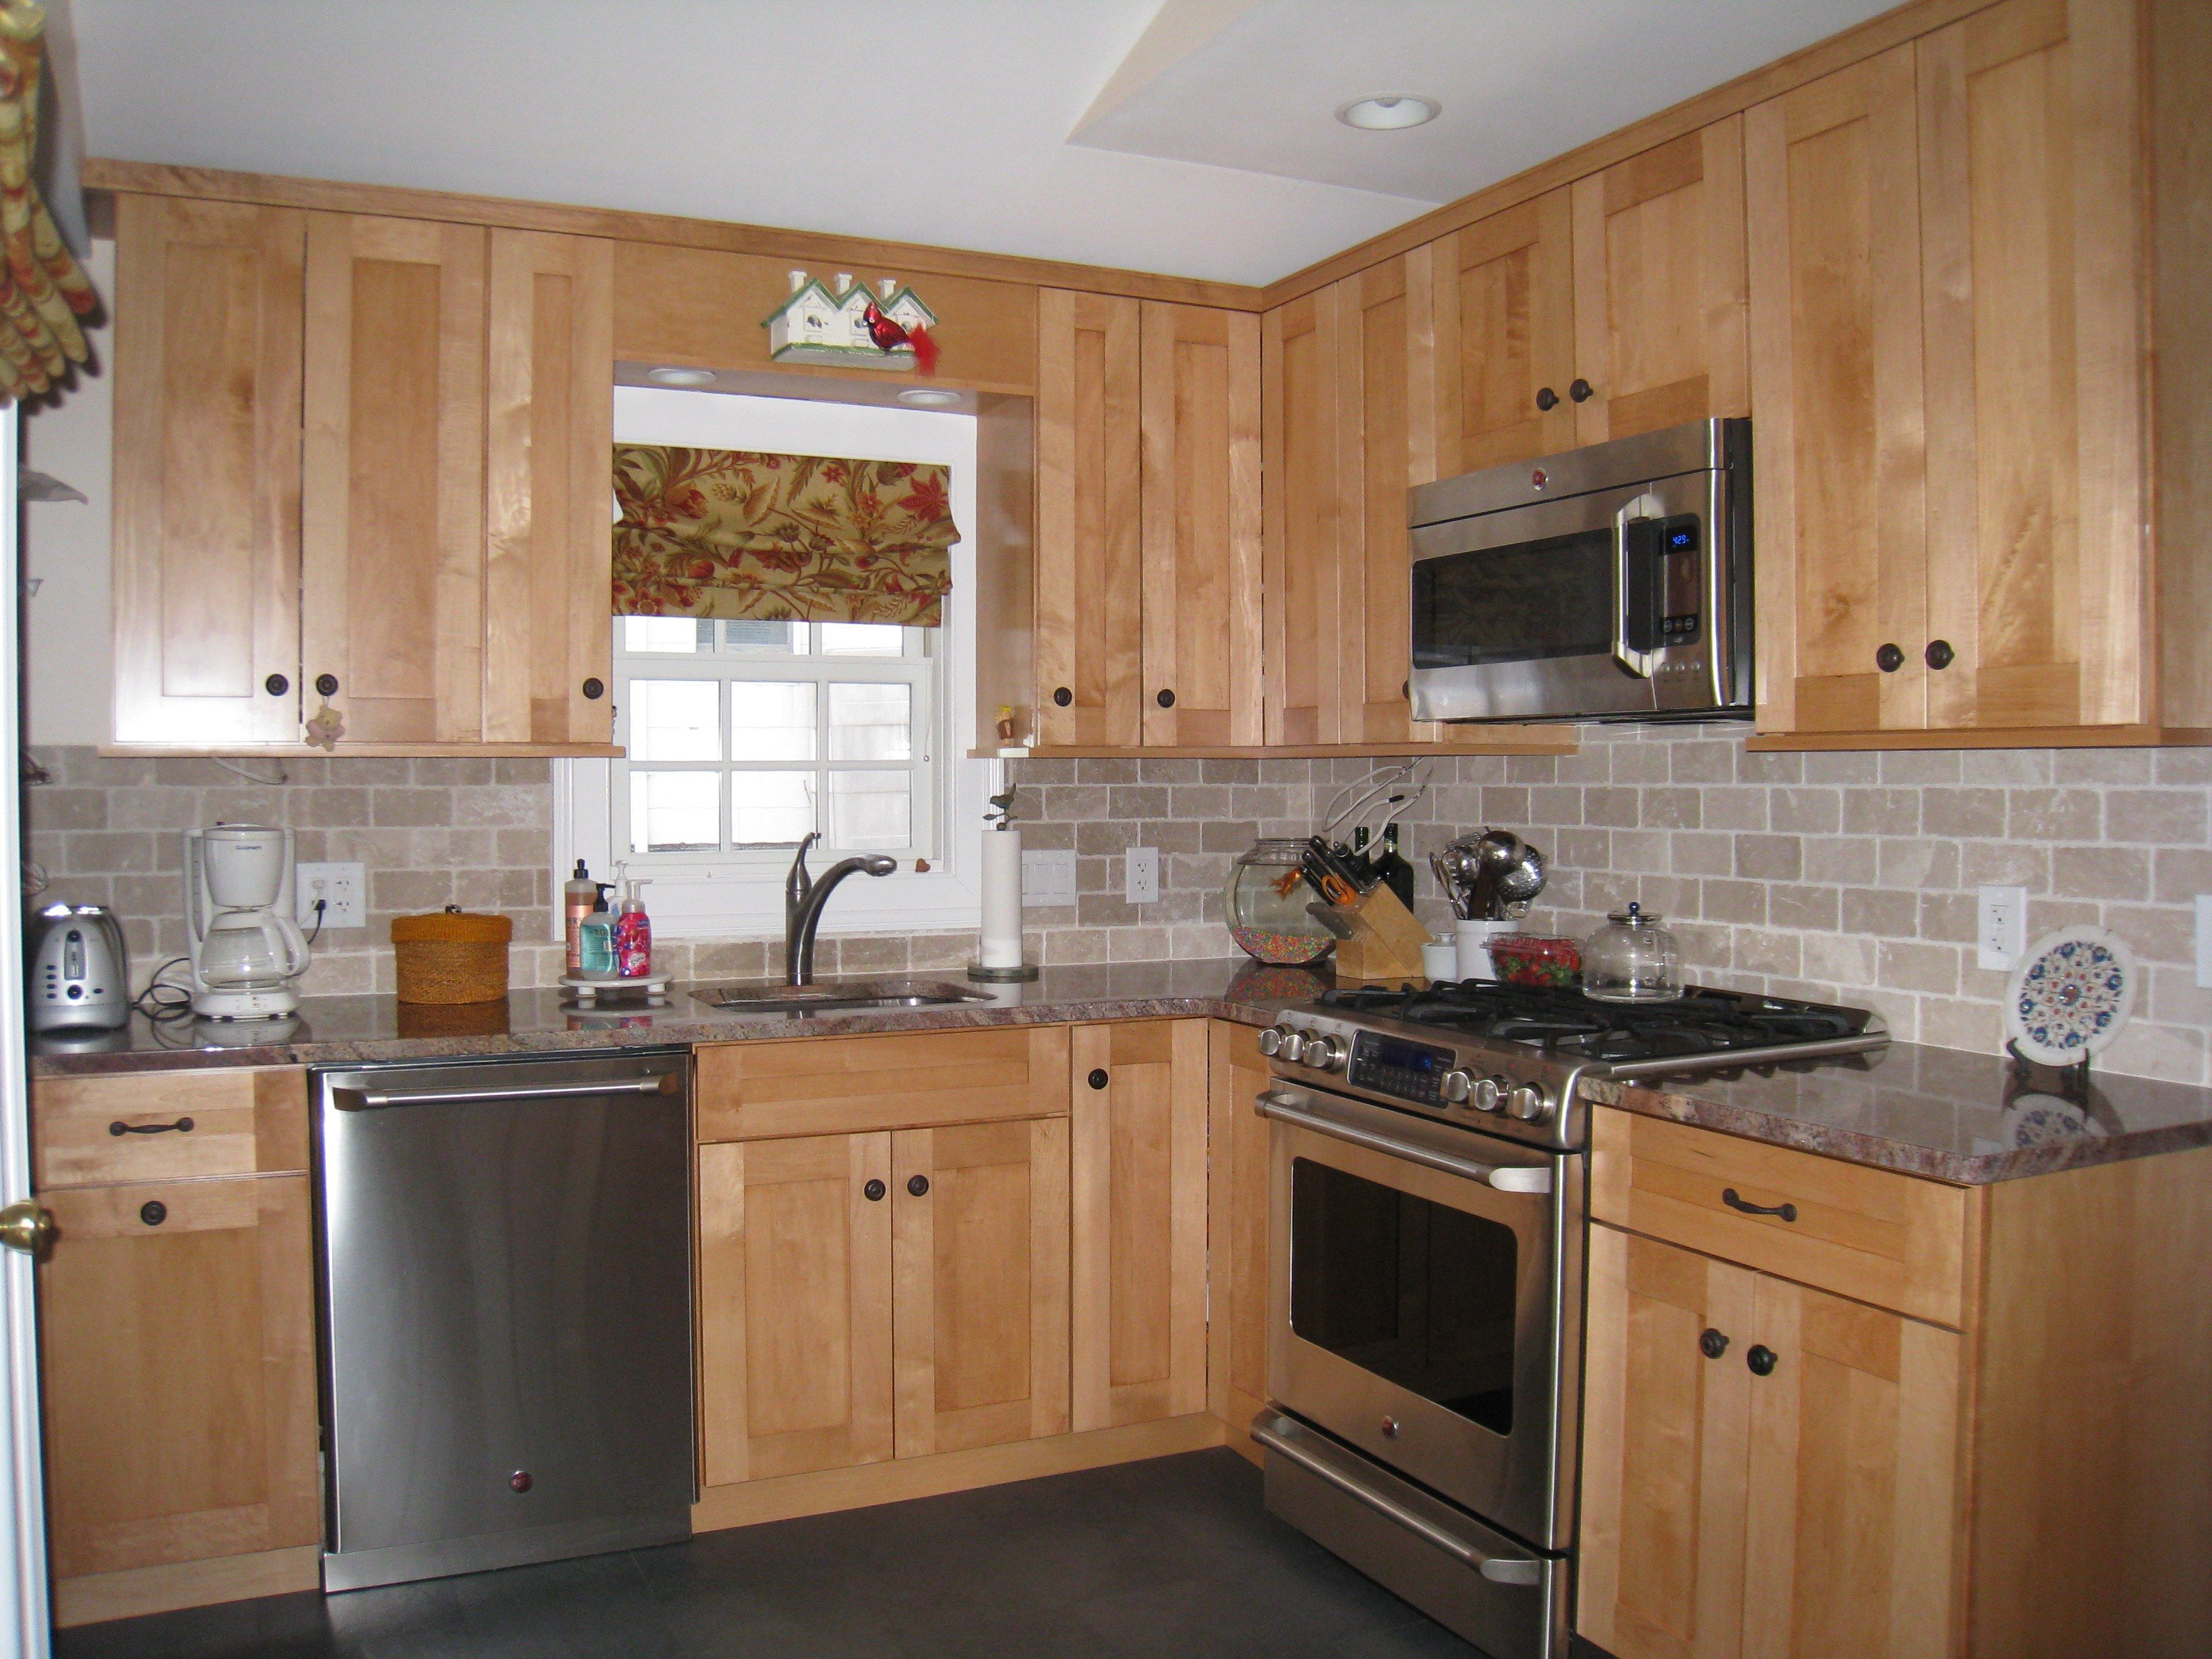 Pictures Of Kitchen Backsplashes Shaker Style Maple Cabinets